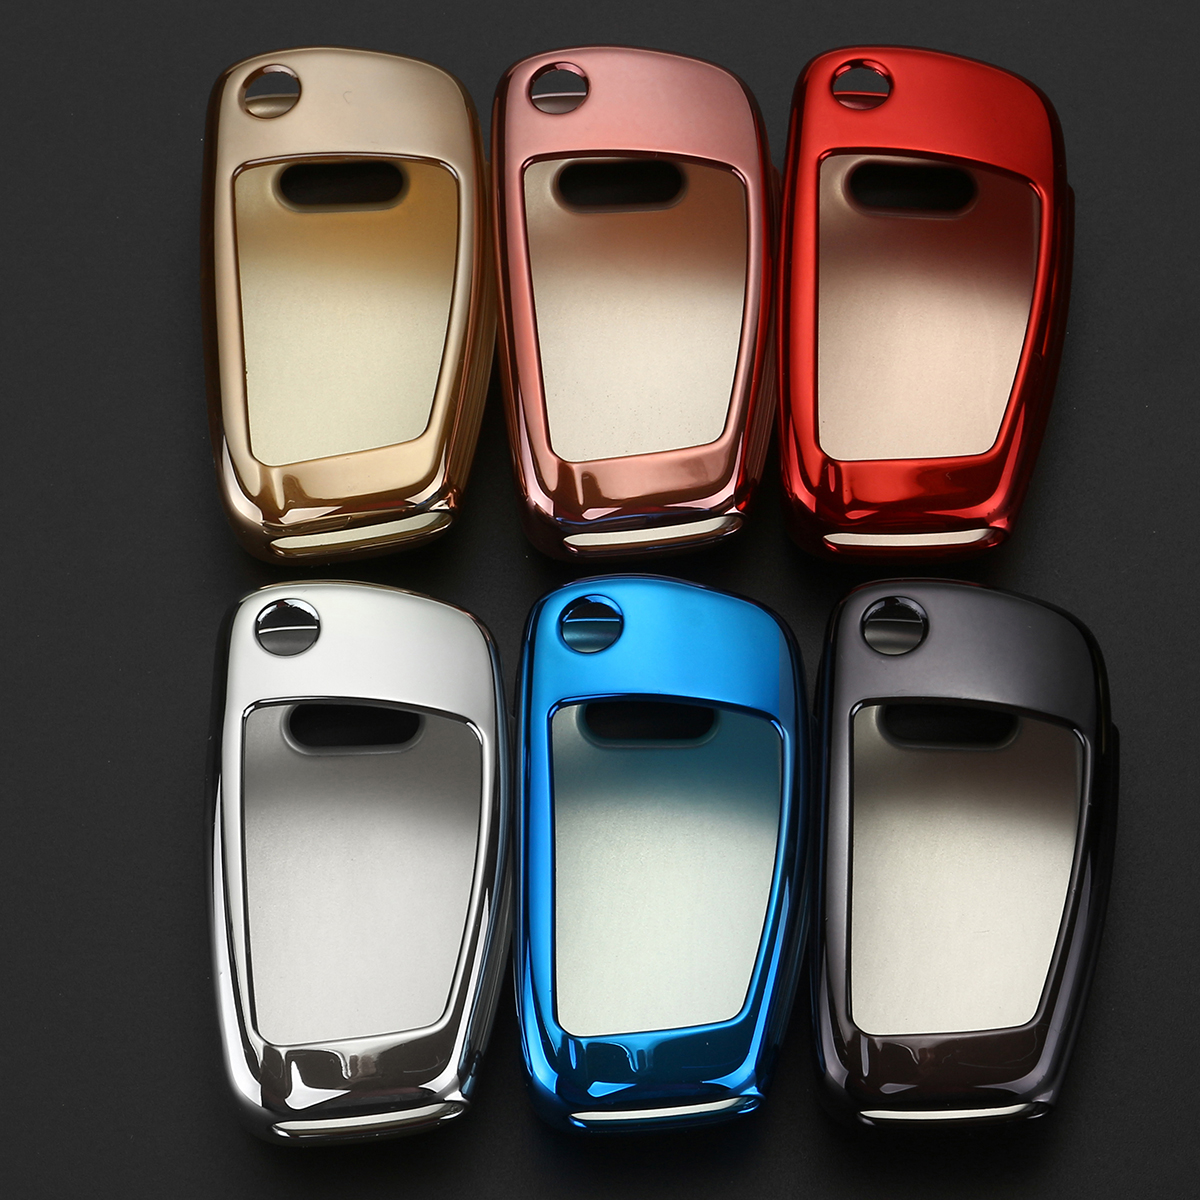 TPU Car Styling Soft TPU Auto Key Protection Cover Case For Audi C6 A7 A8 R8 A1 A3 A4 A5 Q7 A6 C5 Car Holder Shell Car-Styling